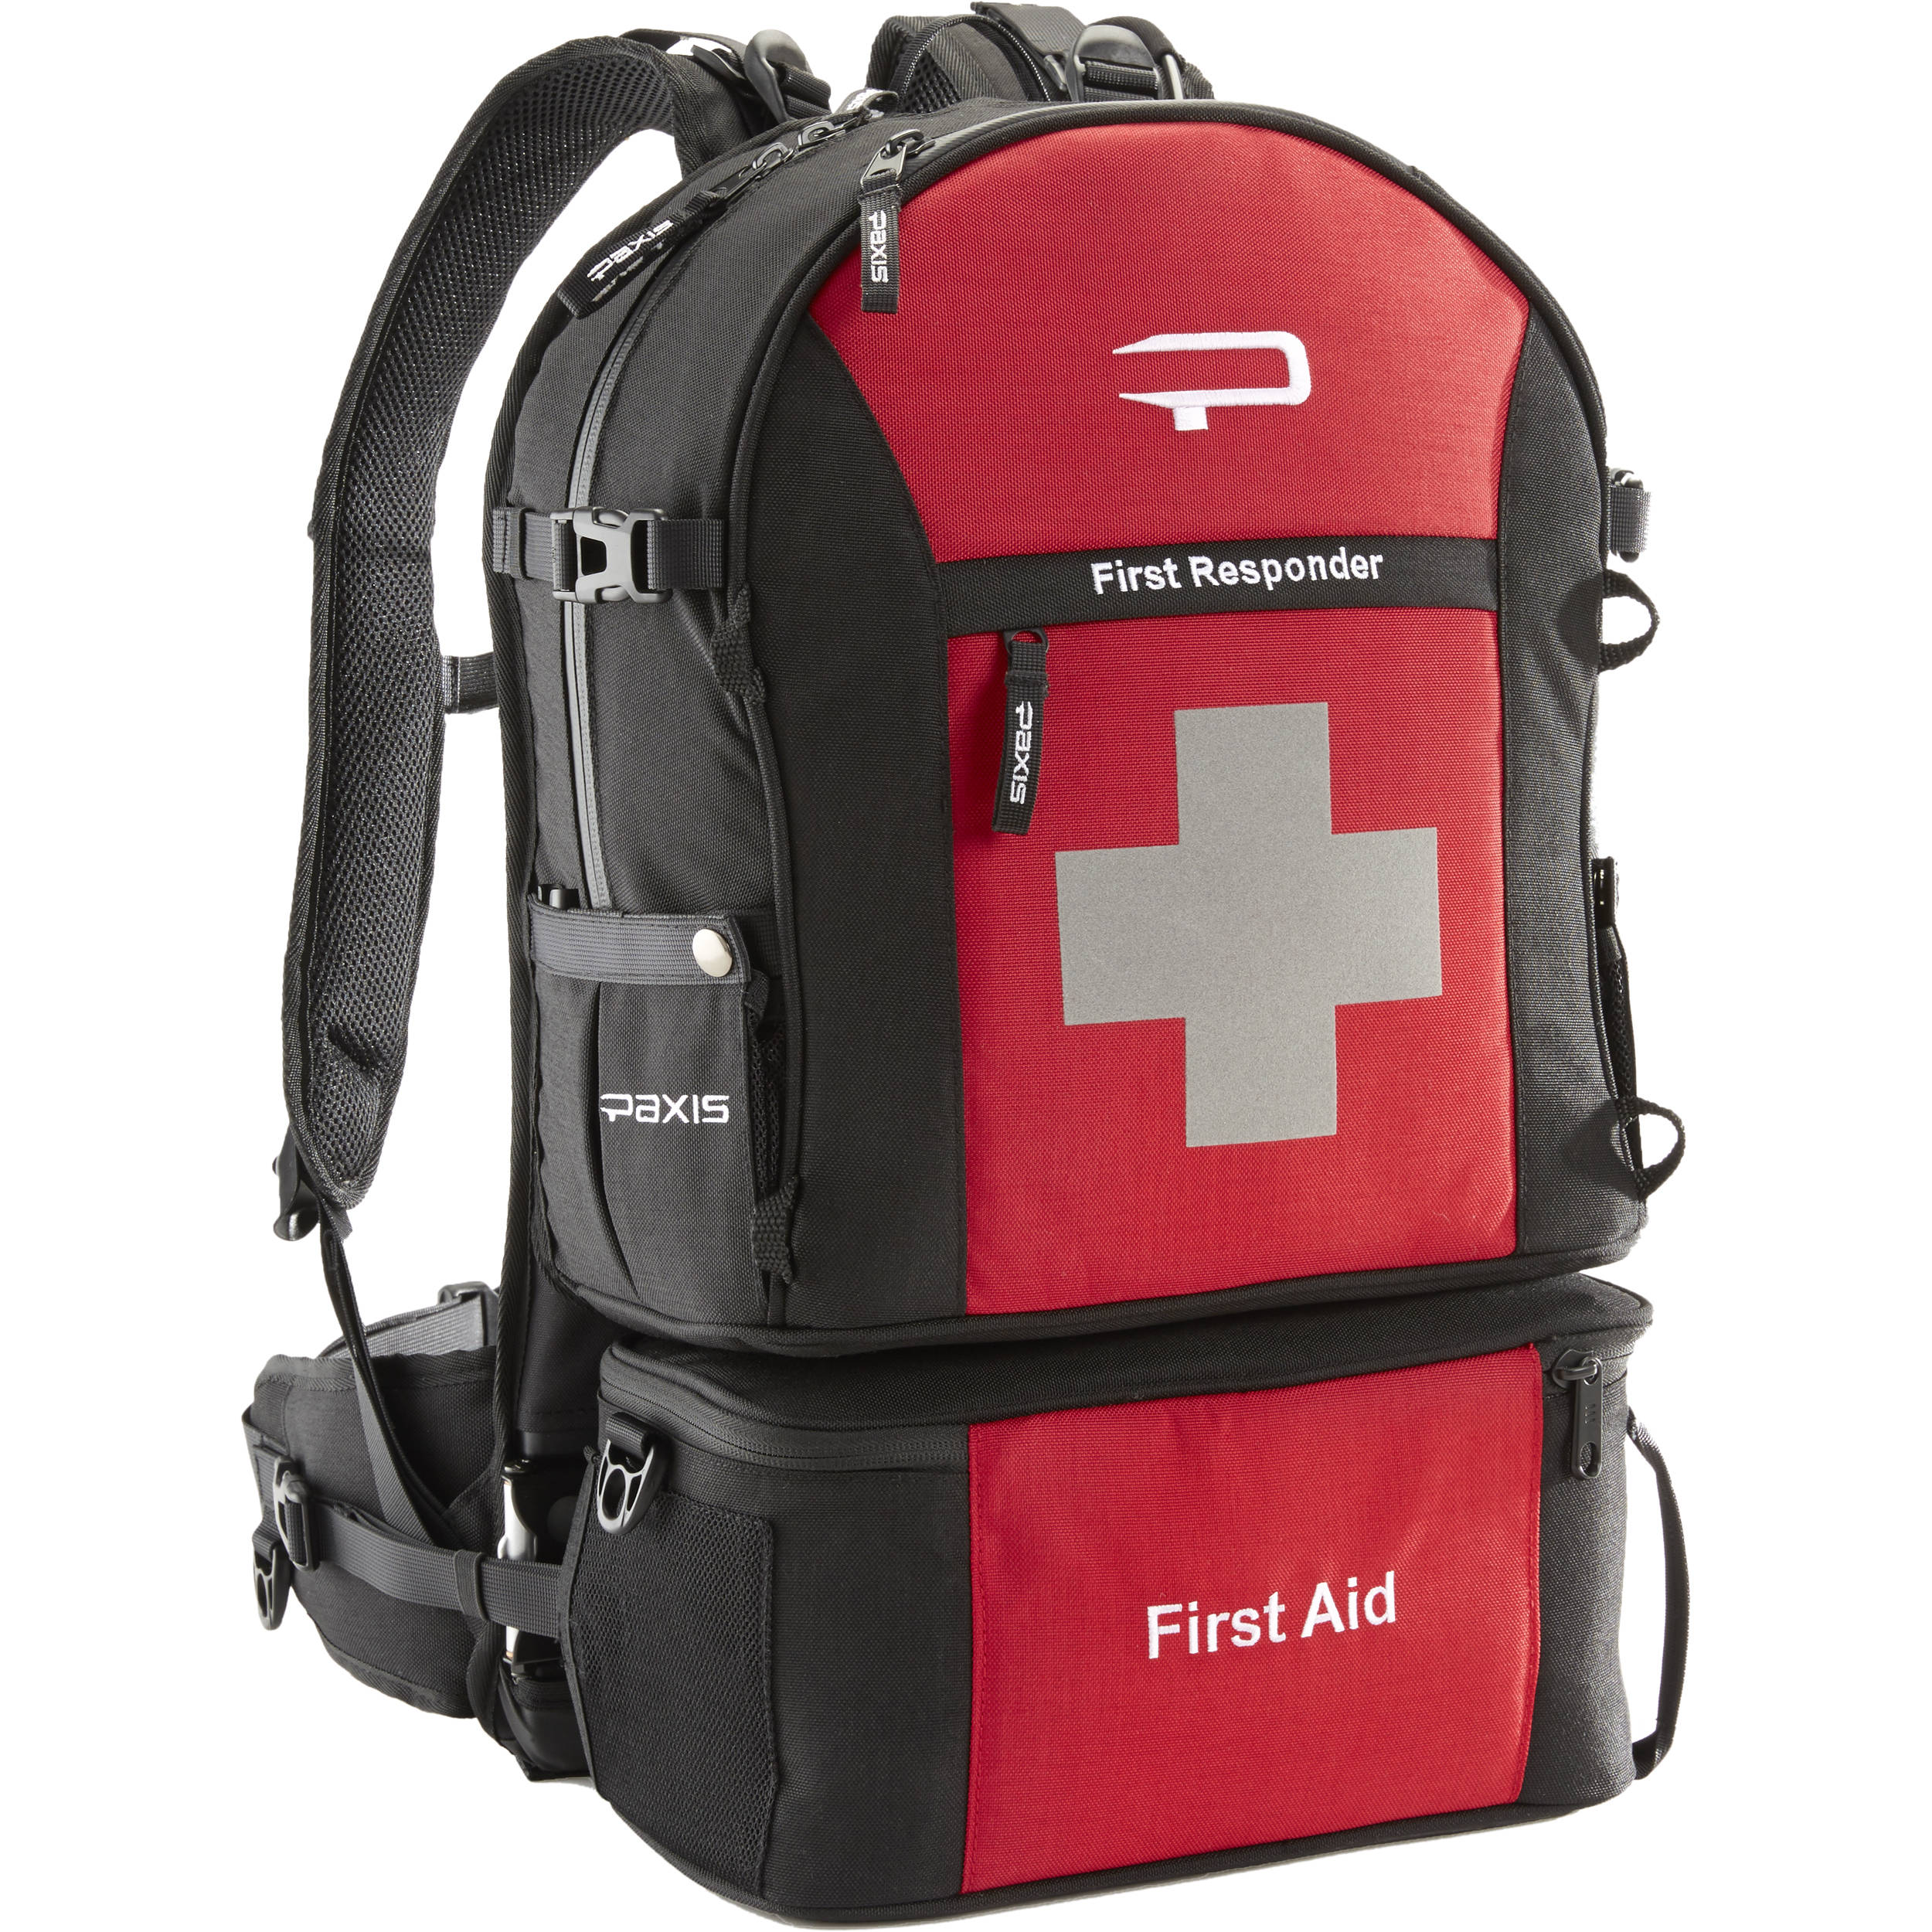 PAXIS First Responder Backpack Red FR20101 BampH Photo Video